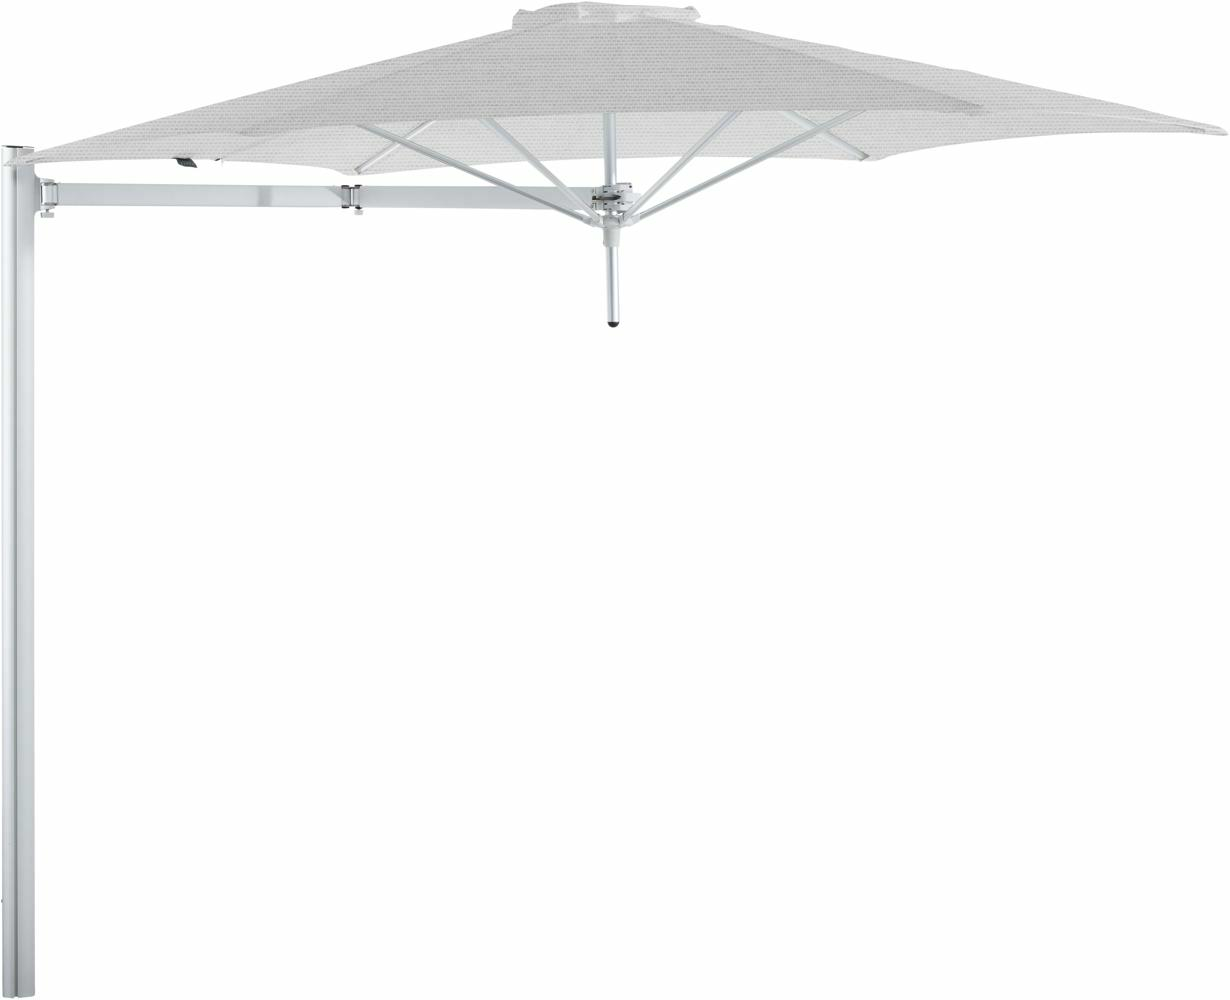 Paraflex cantilever umbrella round 3 m with Marble fabric and a Neo arm